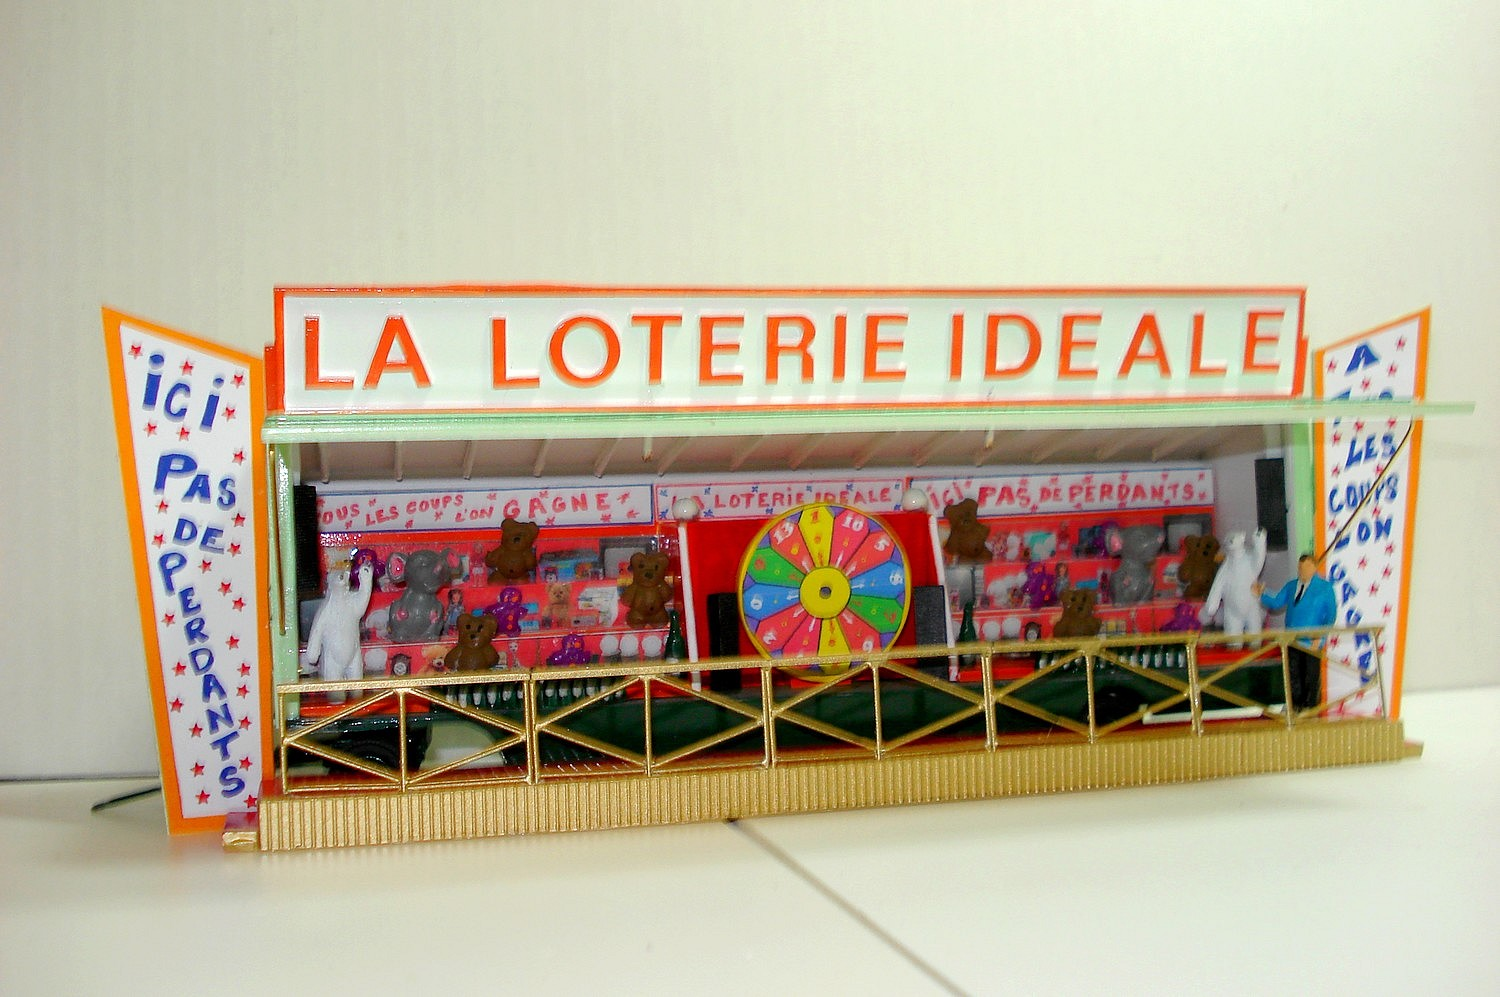 Loterie ideale